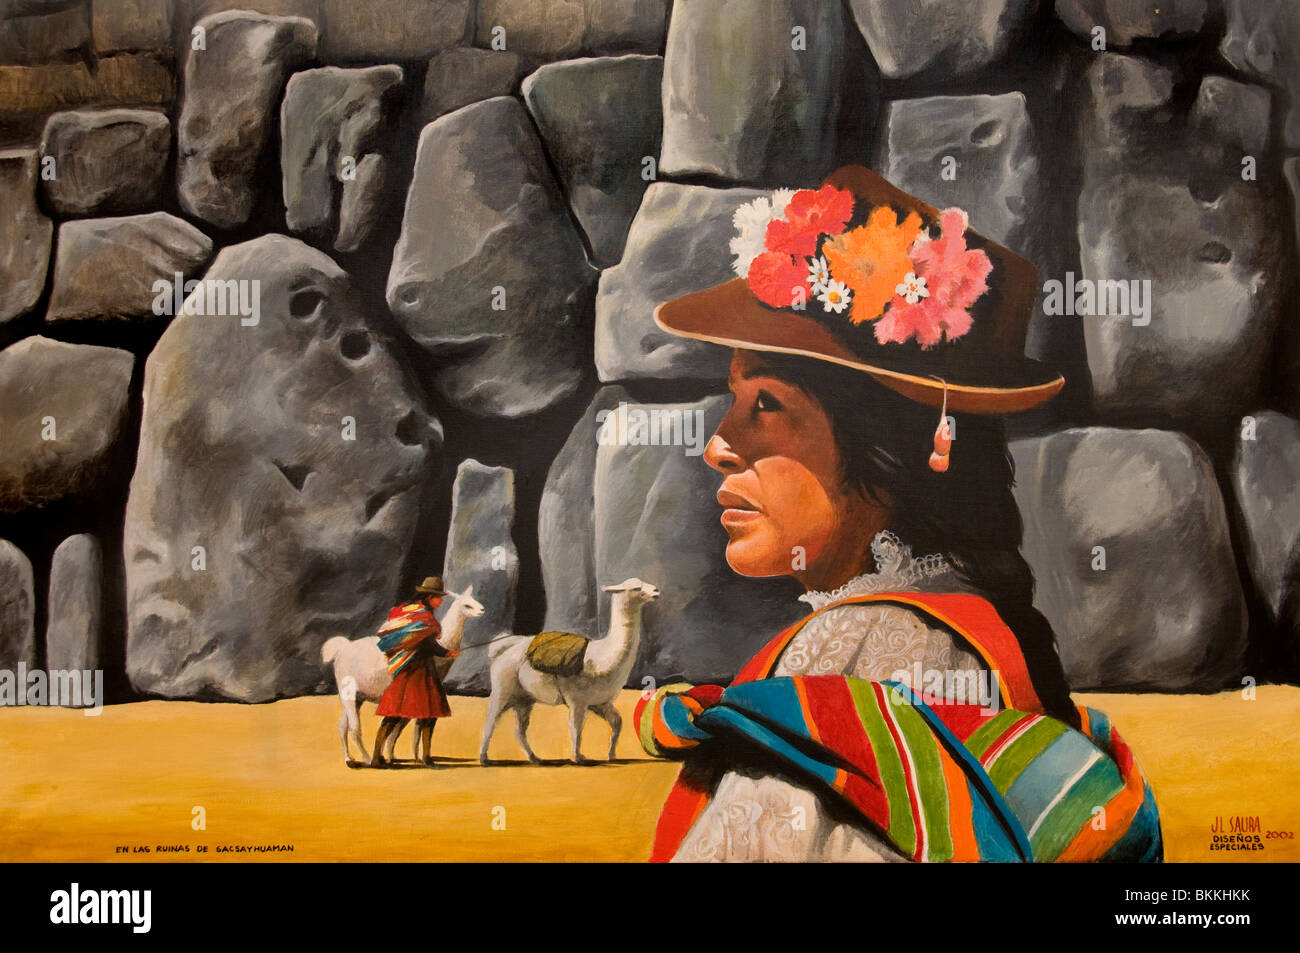 Peintures Du Sud Painting Peru Photos And Painting Peru Images Alamy